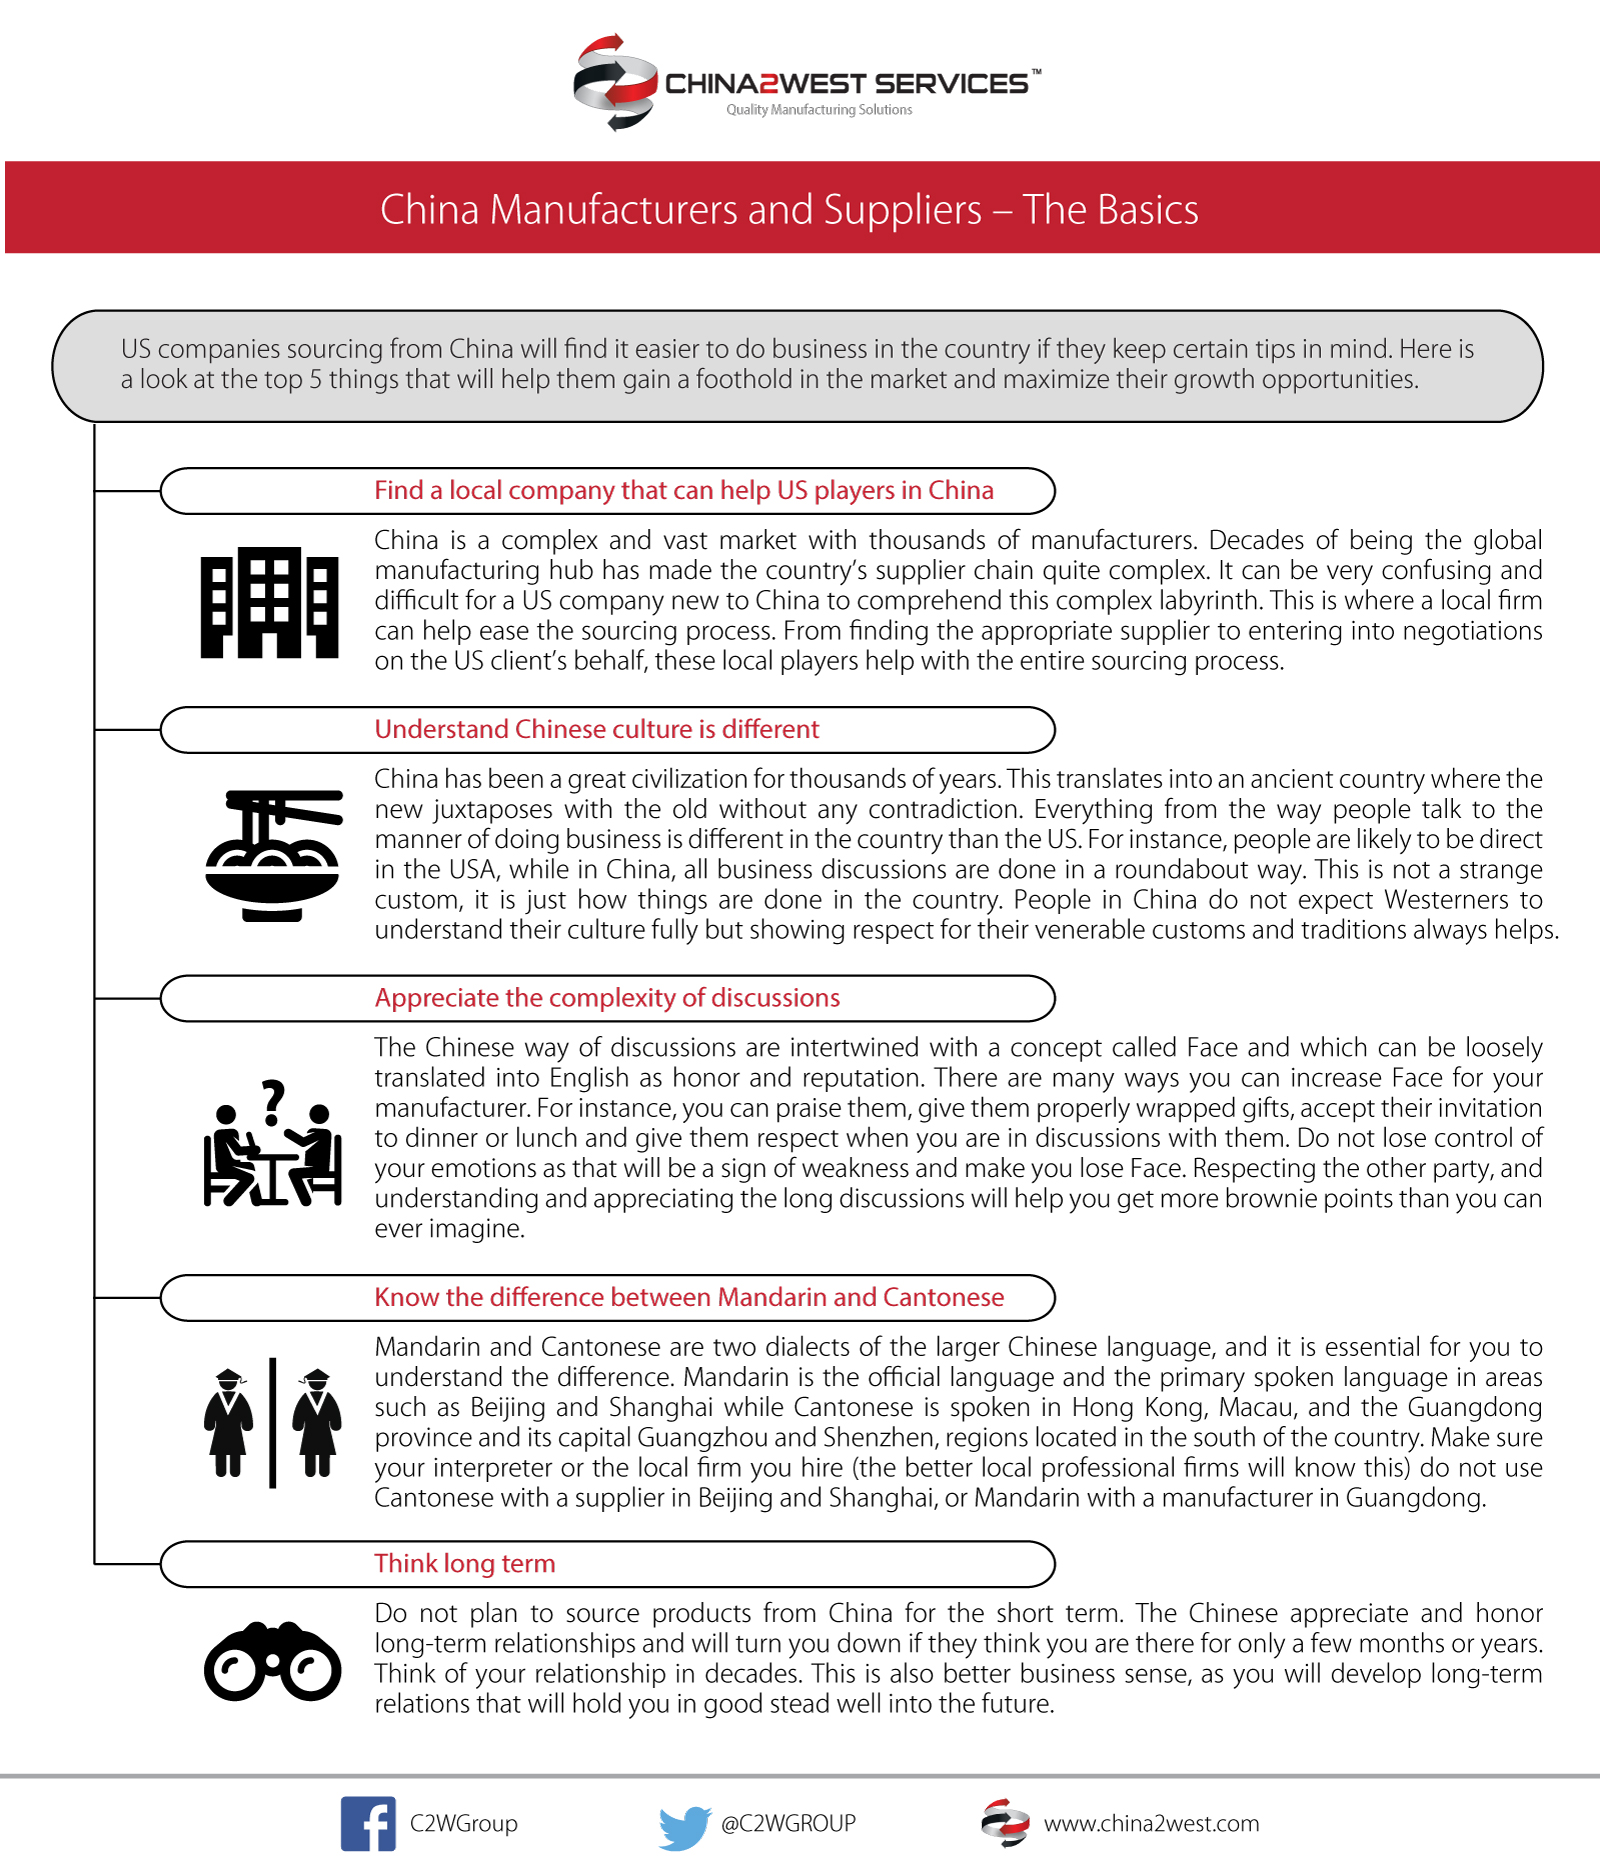 C2W Infographic - China Manufacturers and Suppliers- The Basics